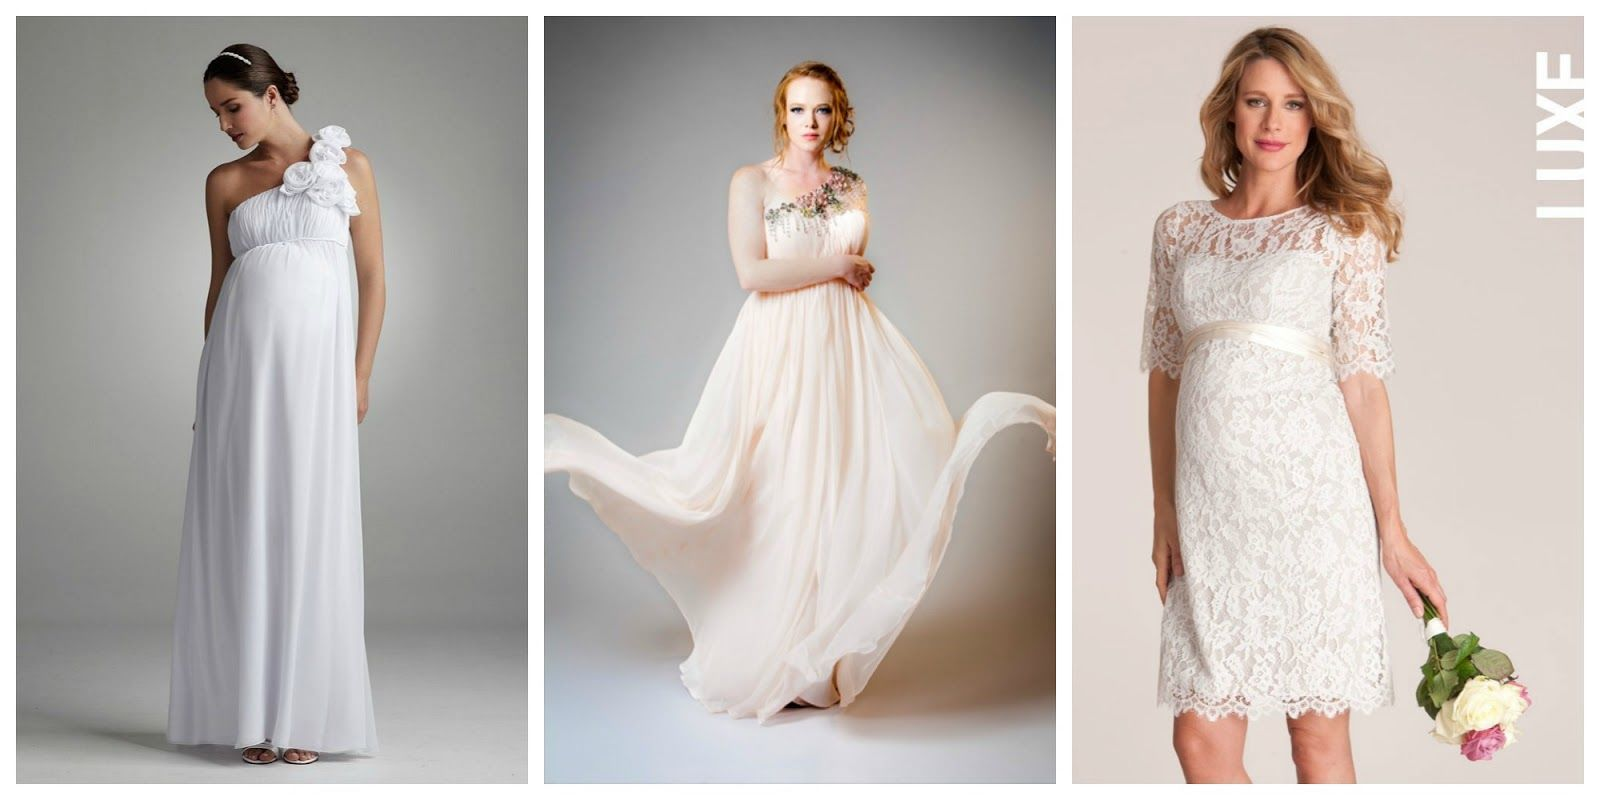 Best Picture of maternity wedding dresses david's bridal According ...